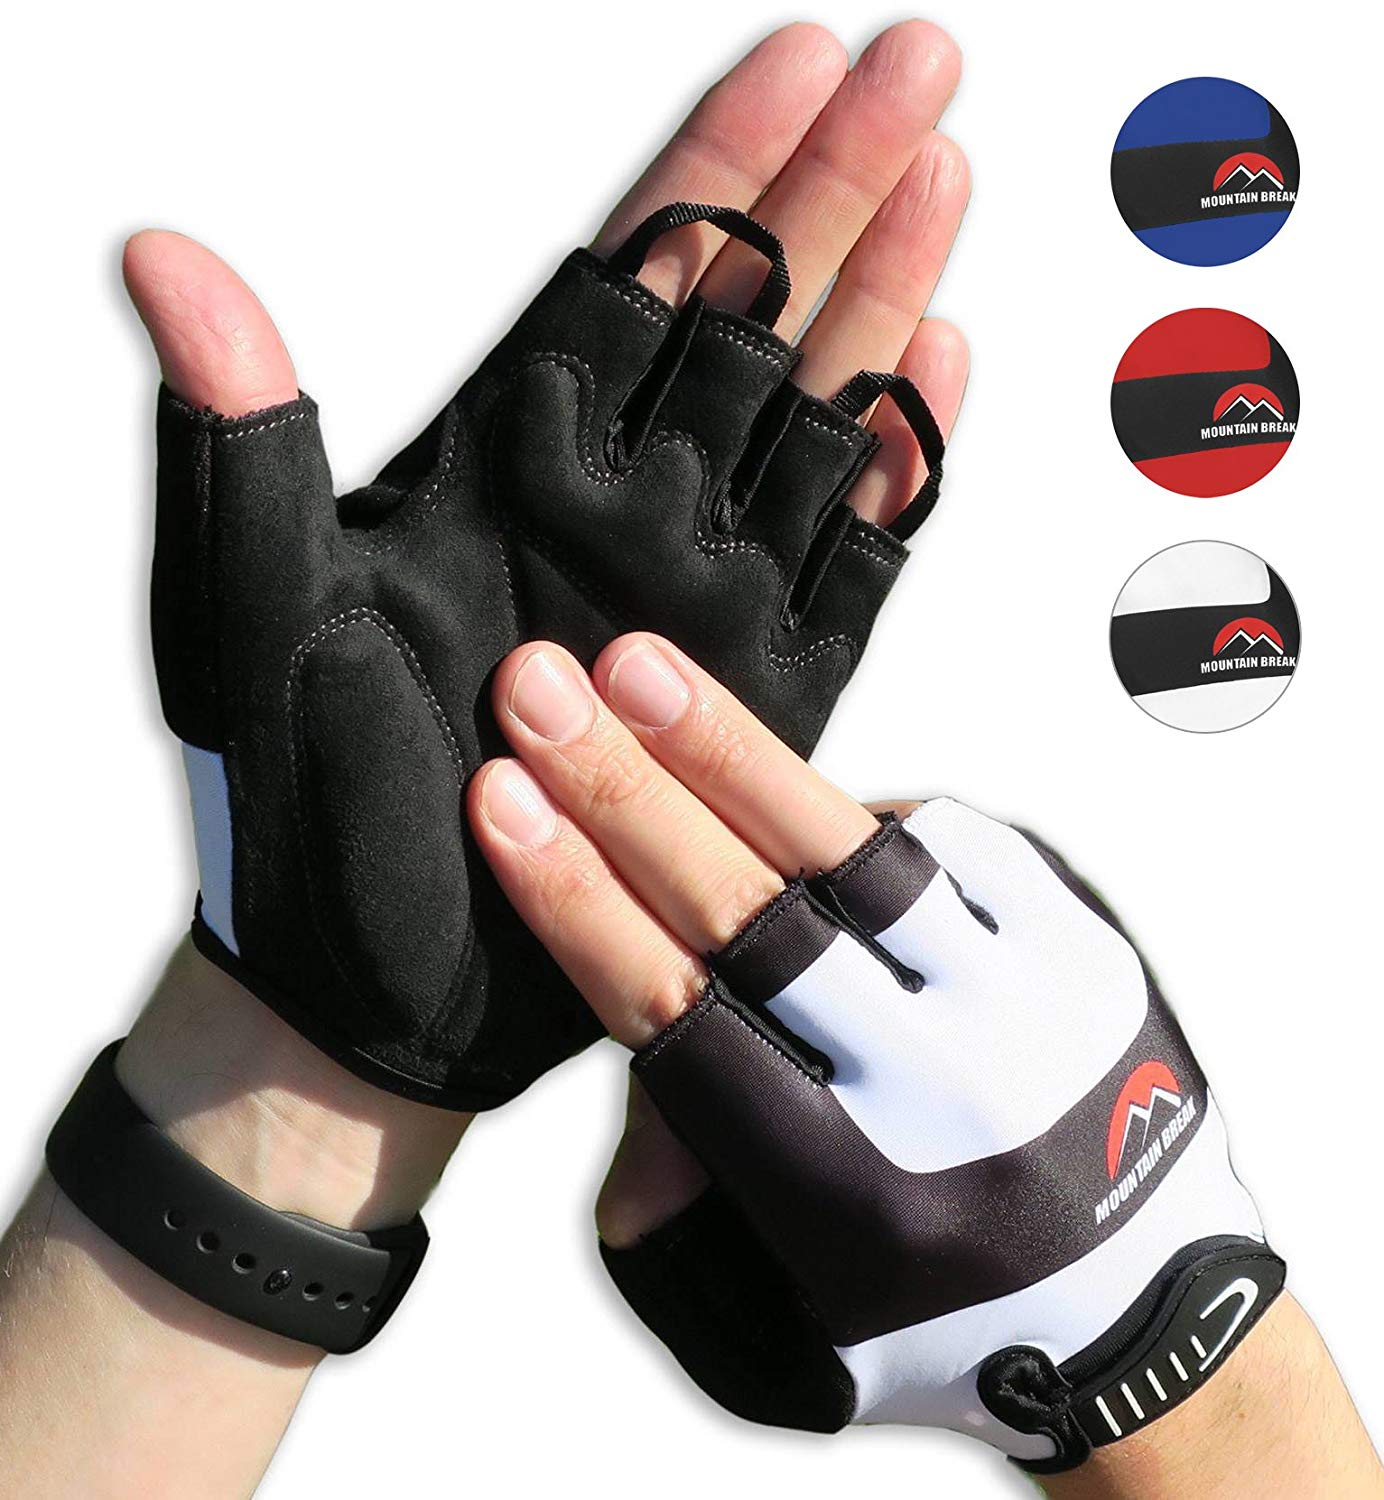 Top 5 Best Cycling Gloves For Numbness